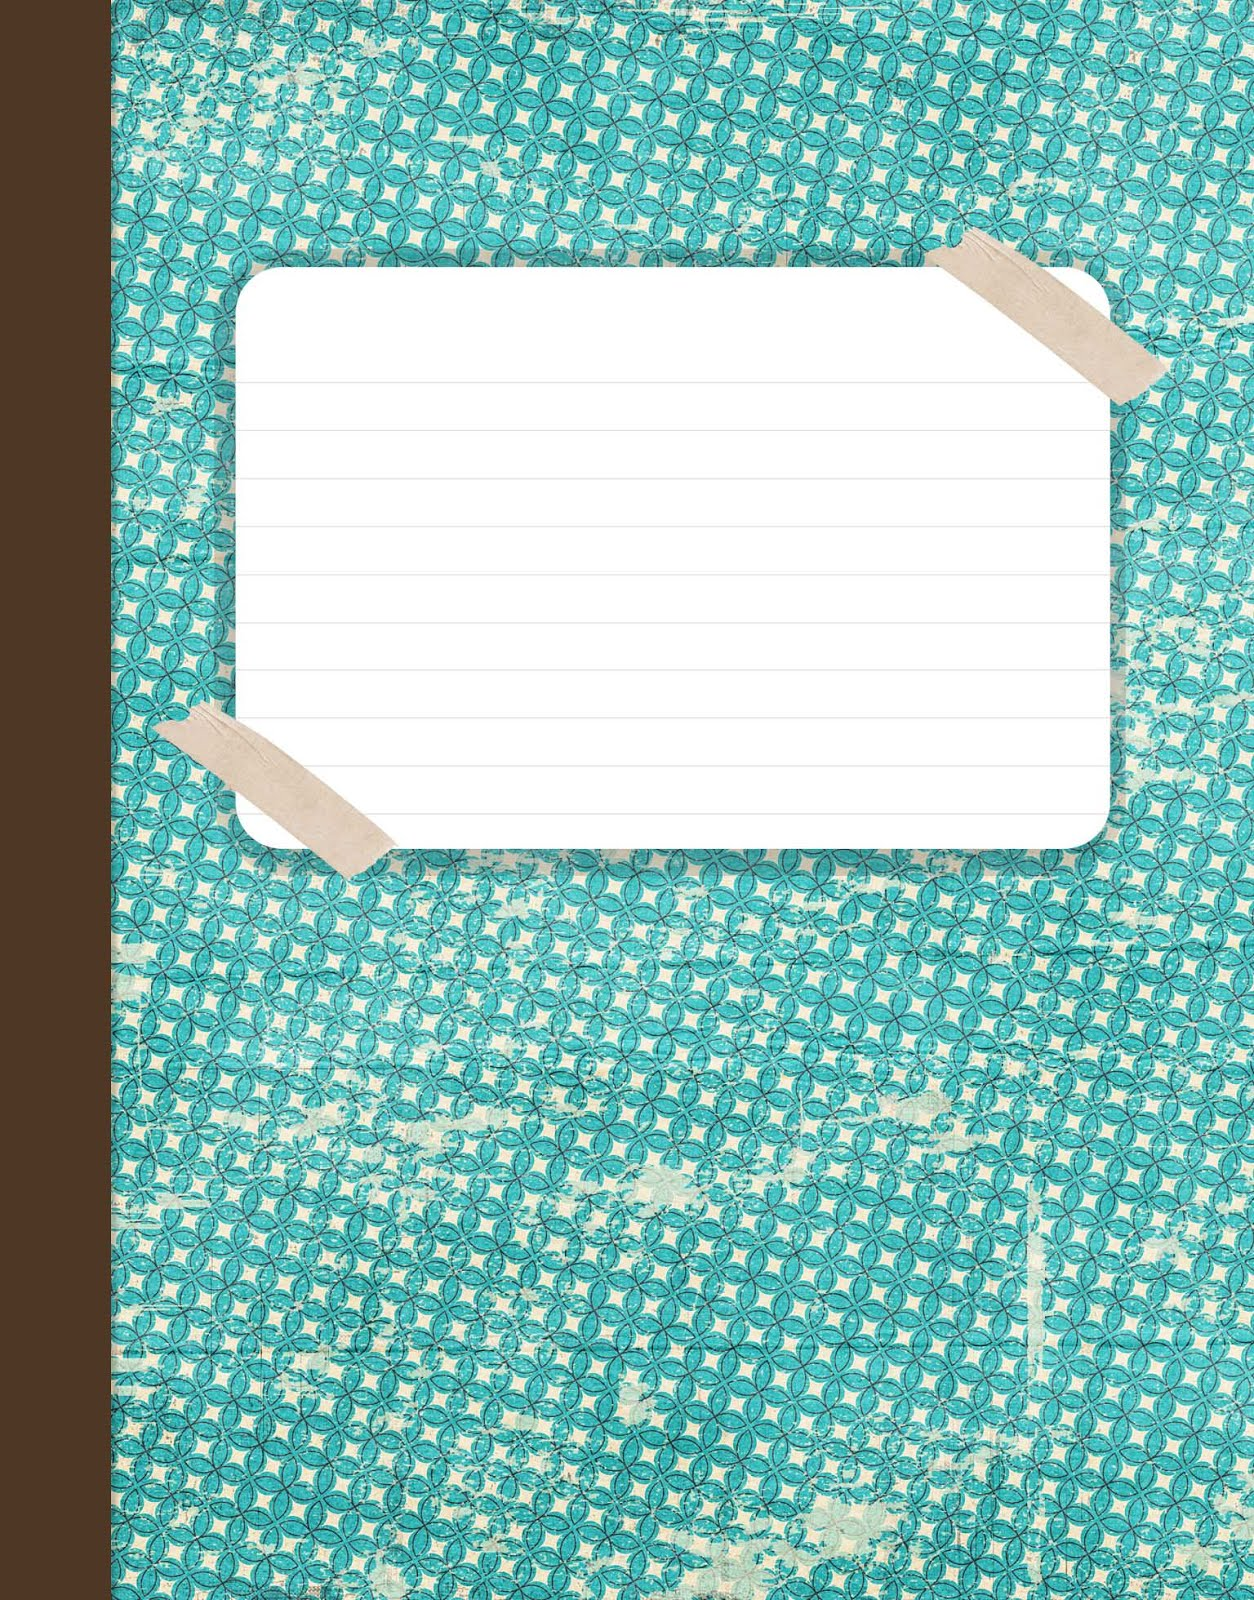 Notebook Cover Template : Hanizeyecandy goodnotes notebook cover